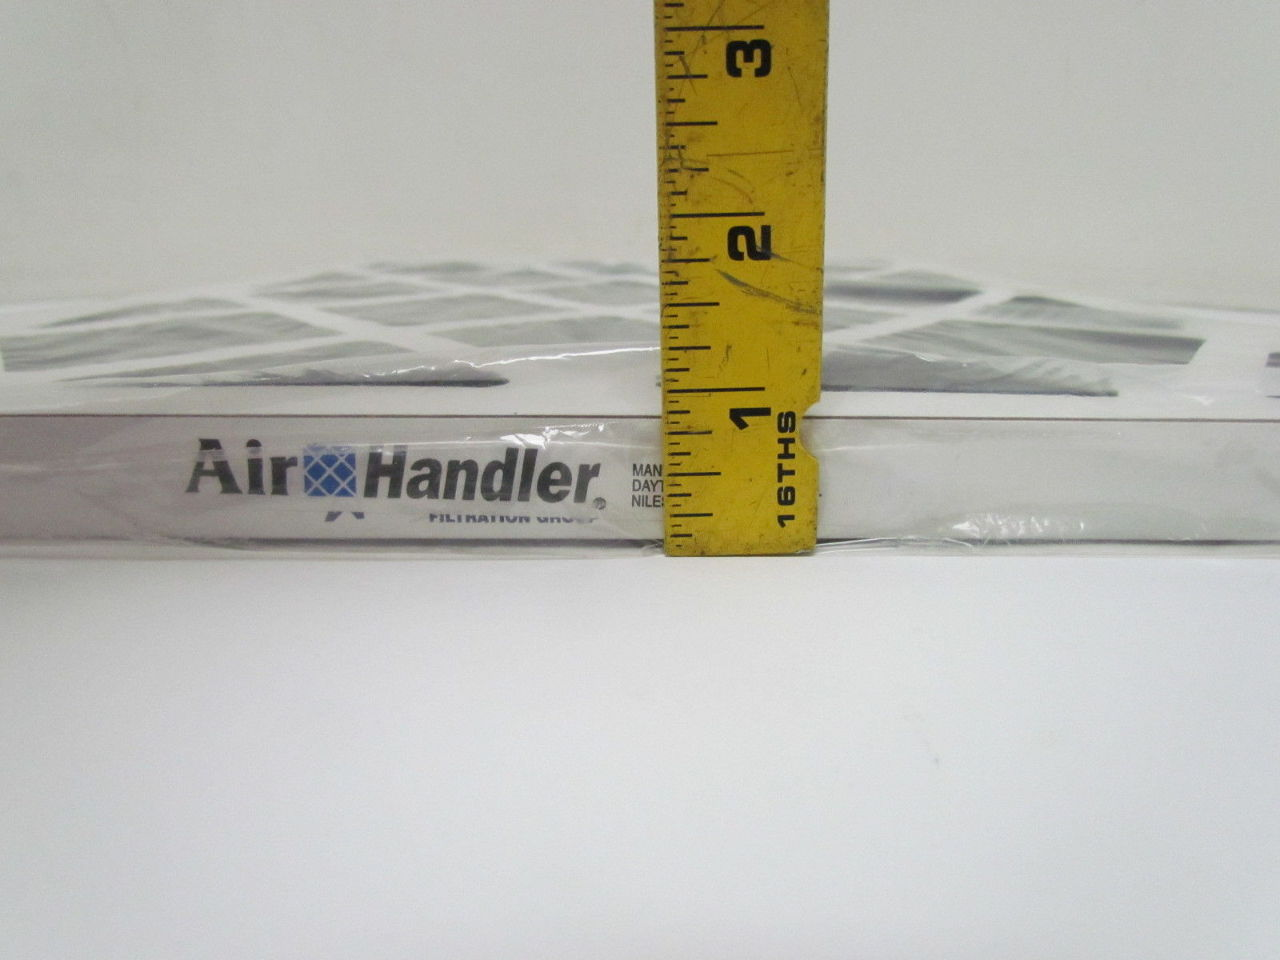 #AD9317 Air Handler 6B902 Pleated Carbon Impregnated Filter  Recommended 947 Air Handler Air Filters pics with 1280x960 px on helpvideos.info - Air Conditioners, Air Coolers and more